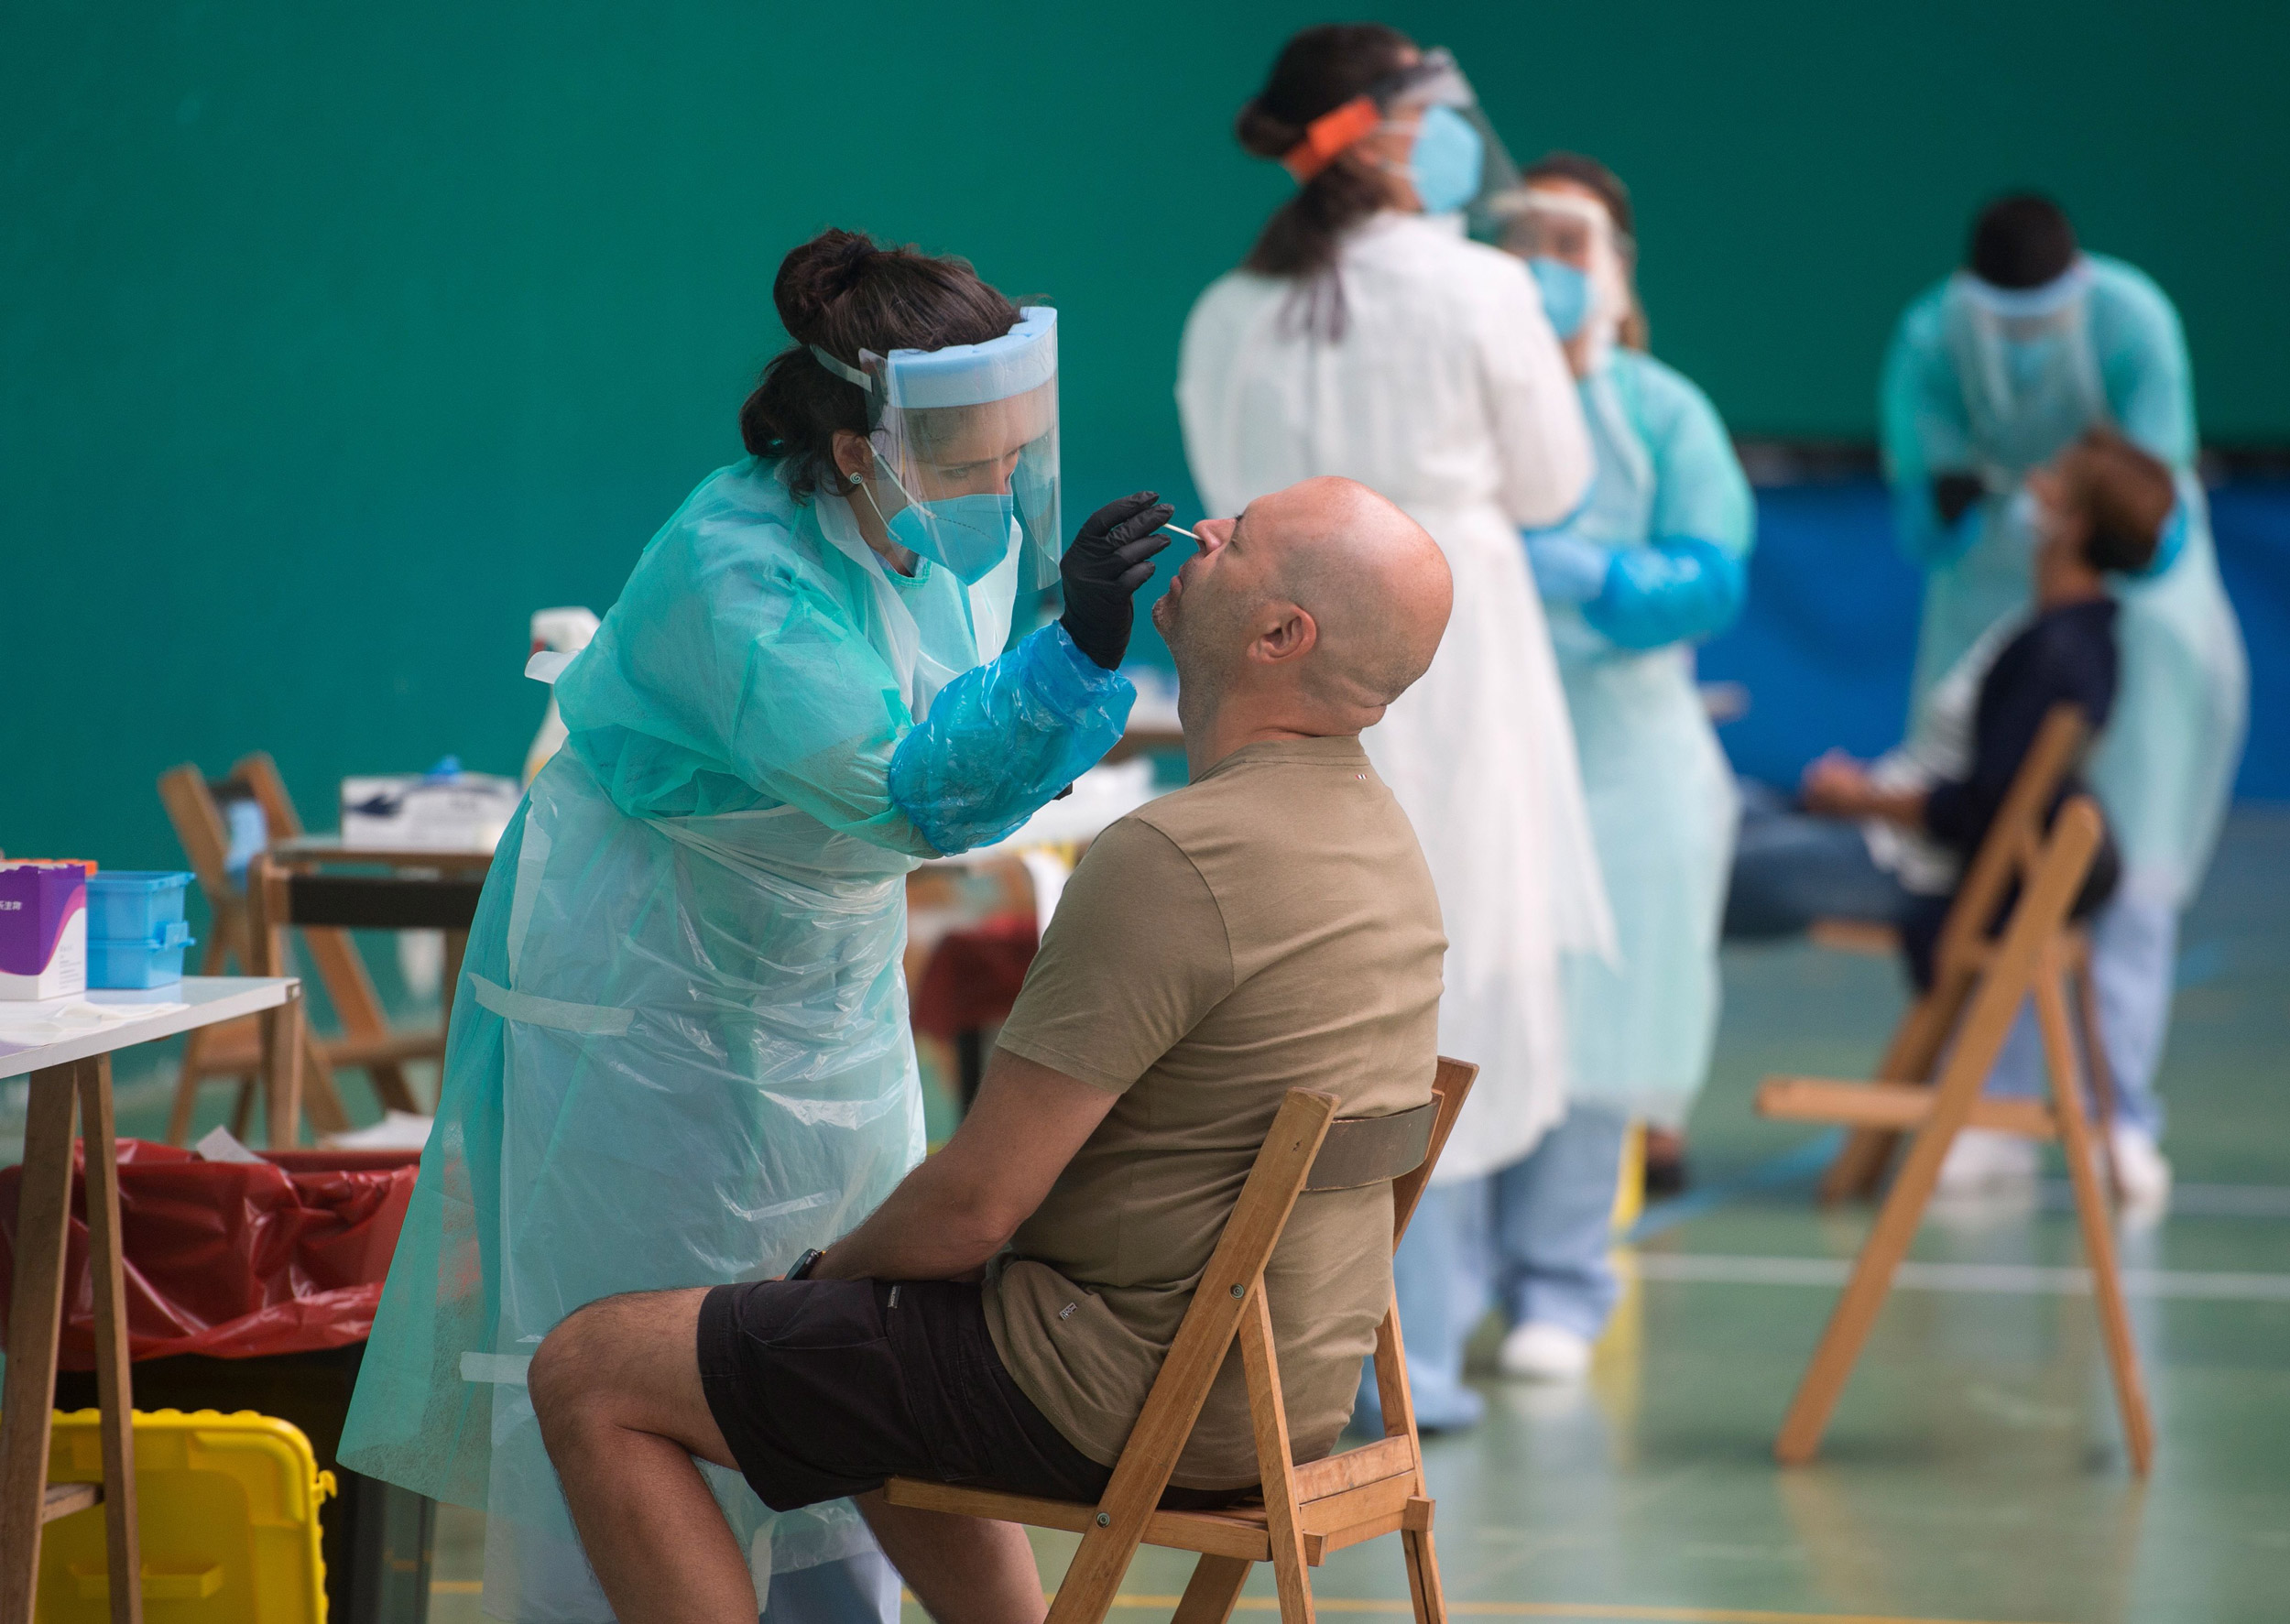 A healthcare worker uses a swab to collect a sample at a temporary testing center for coronavirus in the Spanish Basque city of Getaria on July 15.